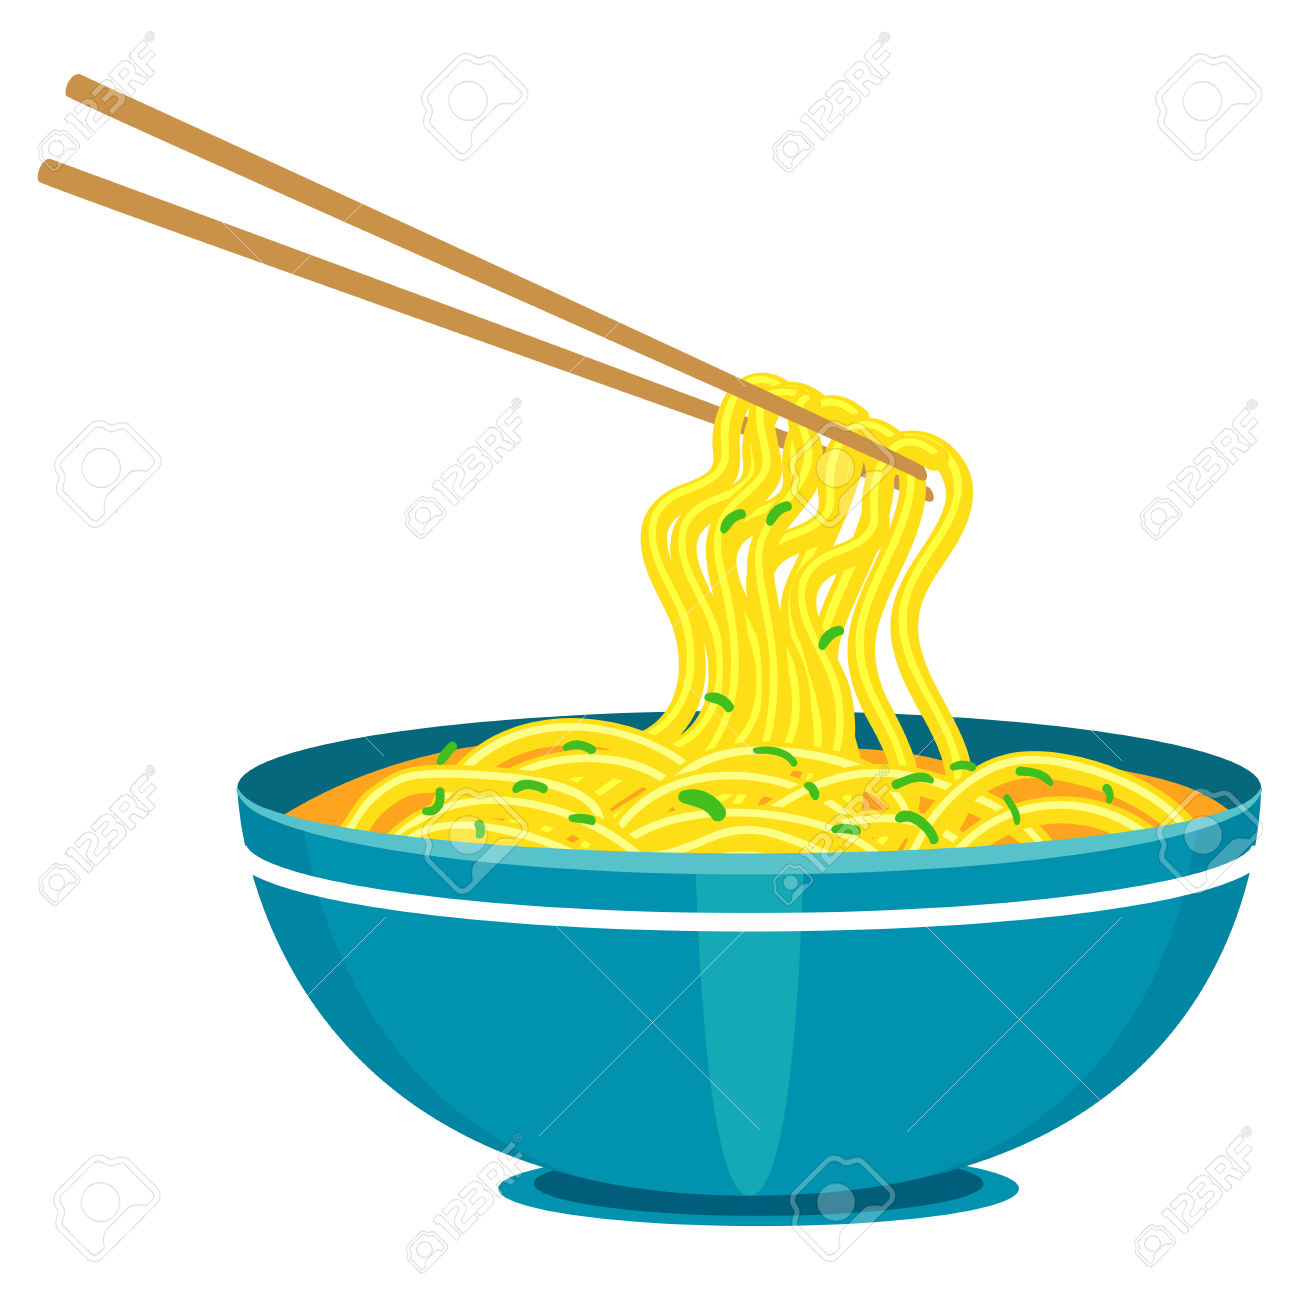 7,960 Noodle Stock Vector Illustration And Royalty Free Noodle Clipart.